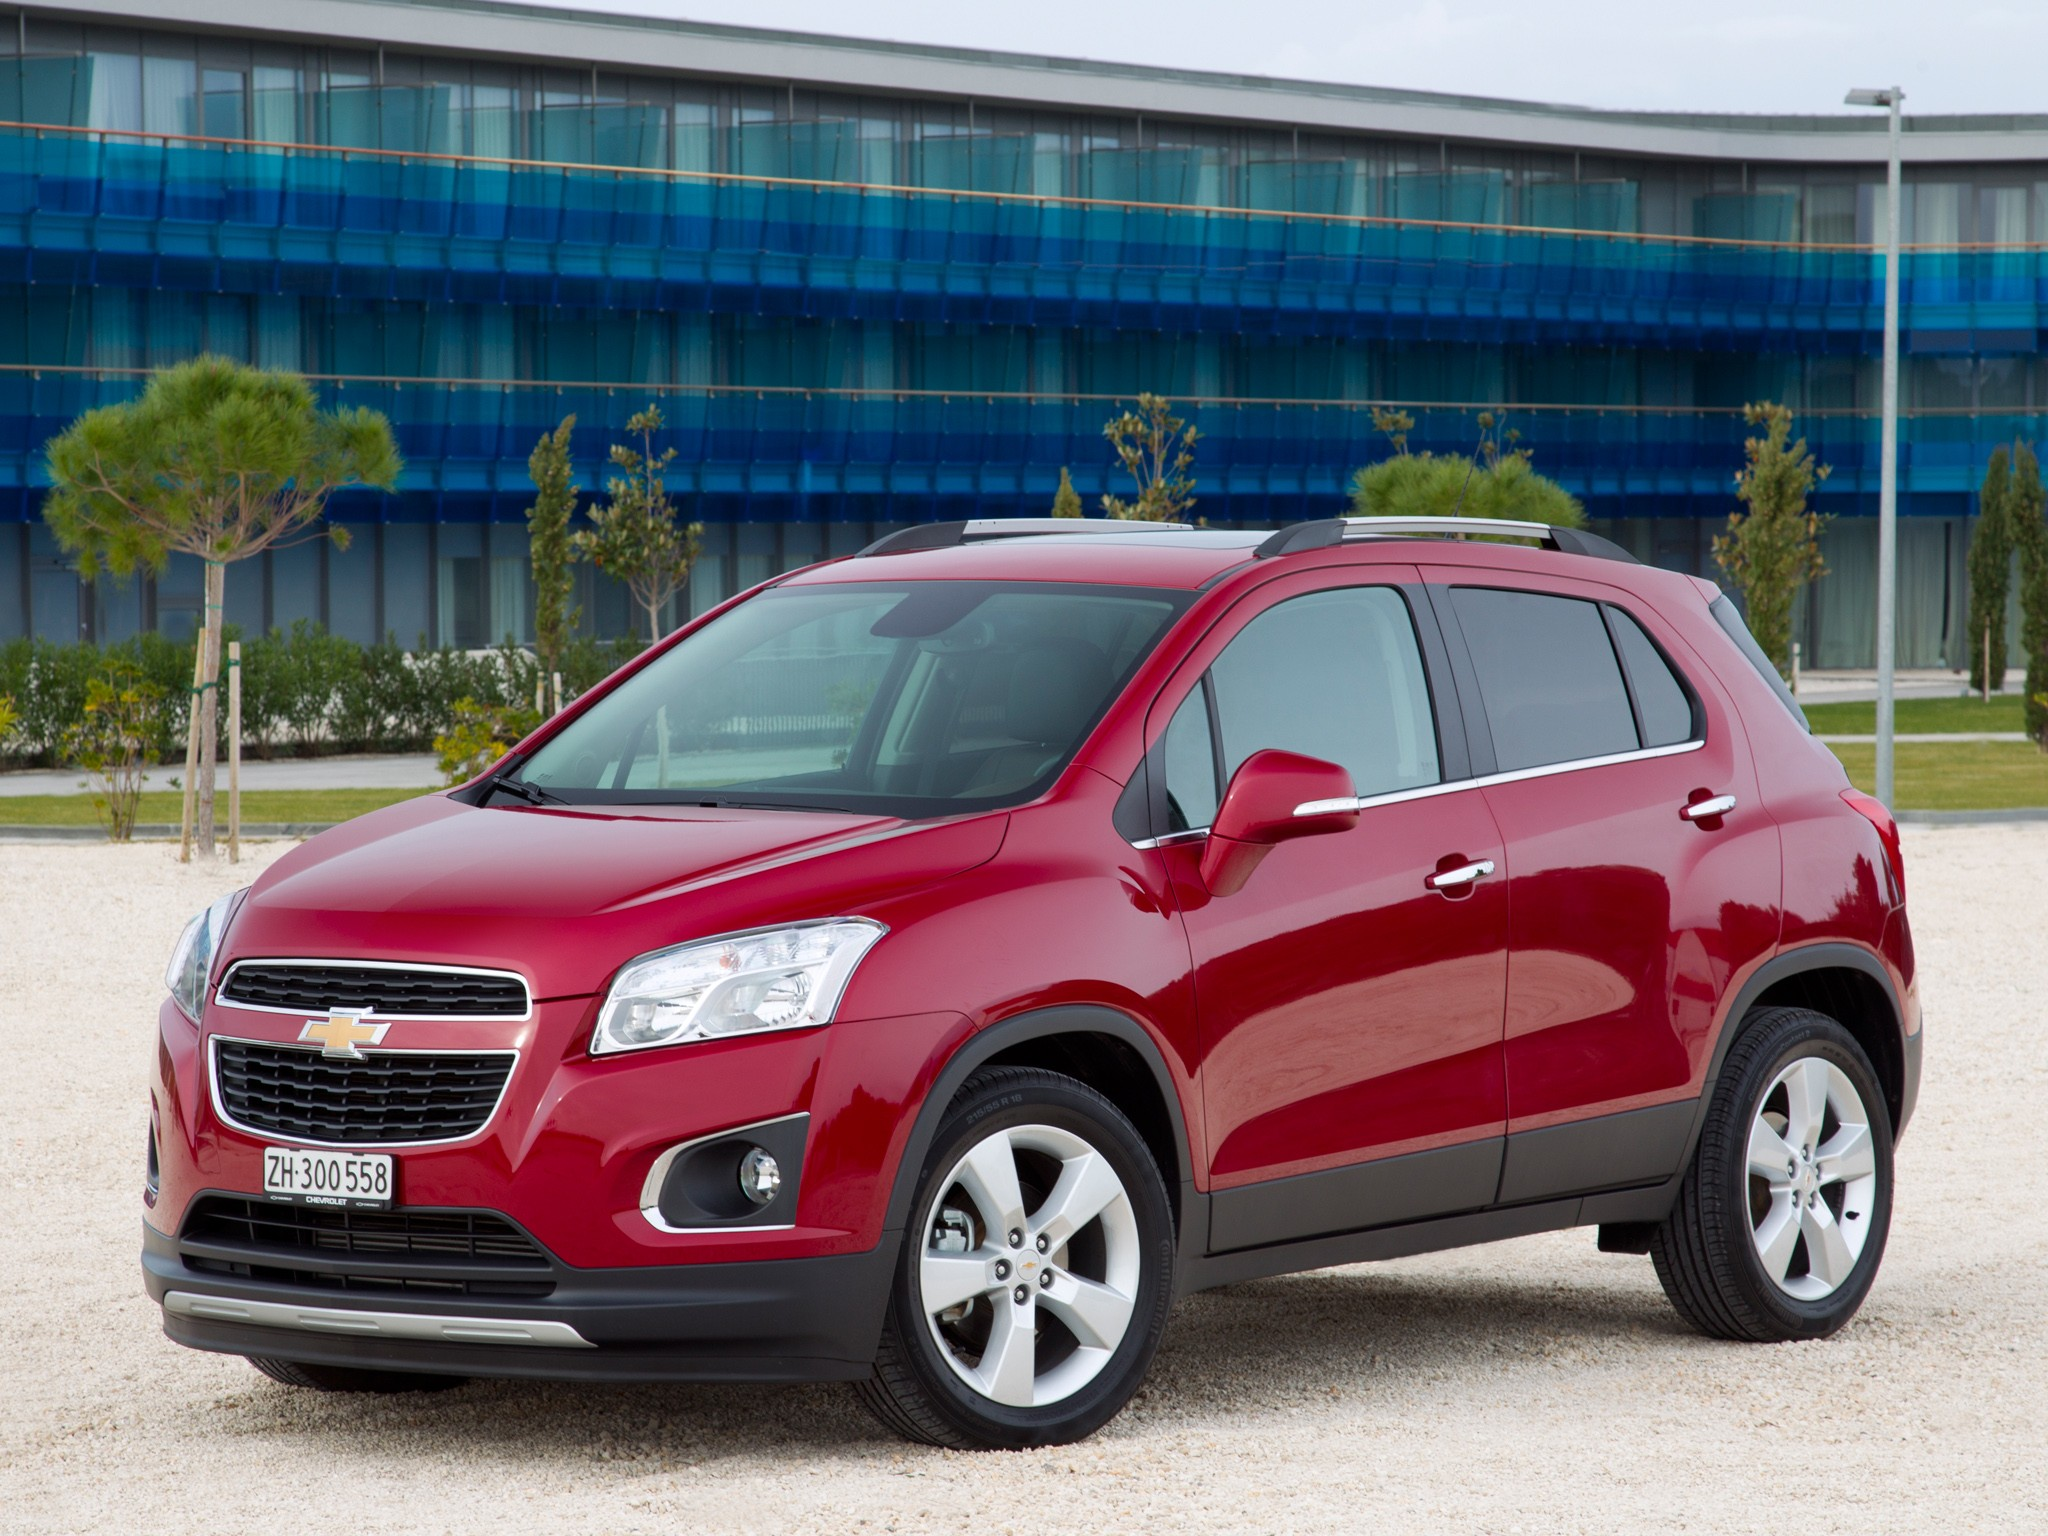 CHEVROLET Trax specs & photos - 2013, 2014, 2015, 2016, 2017